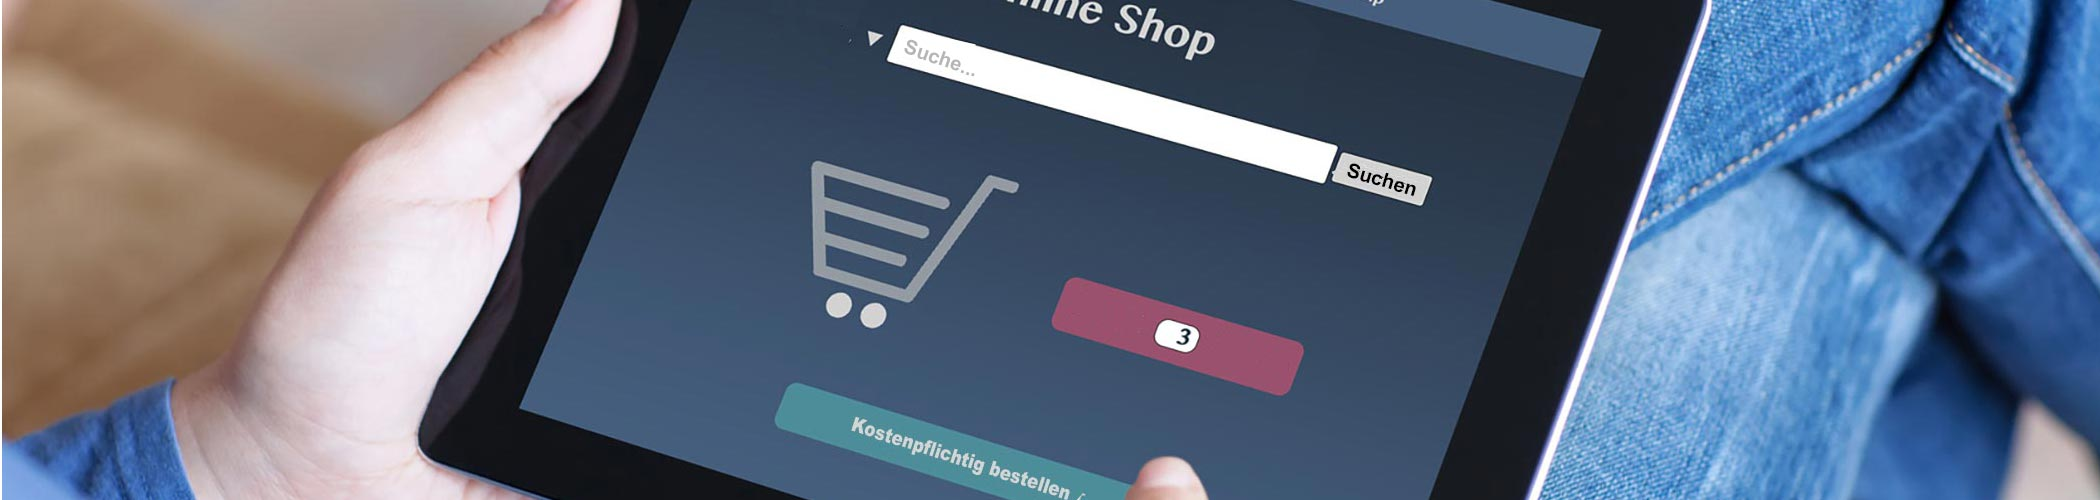 online-shop-erfolg-marketing